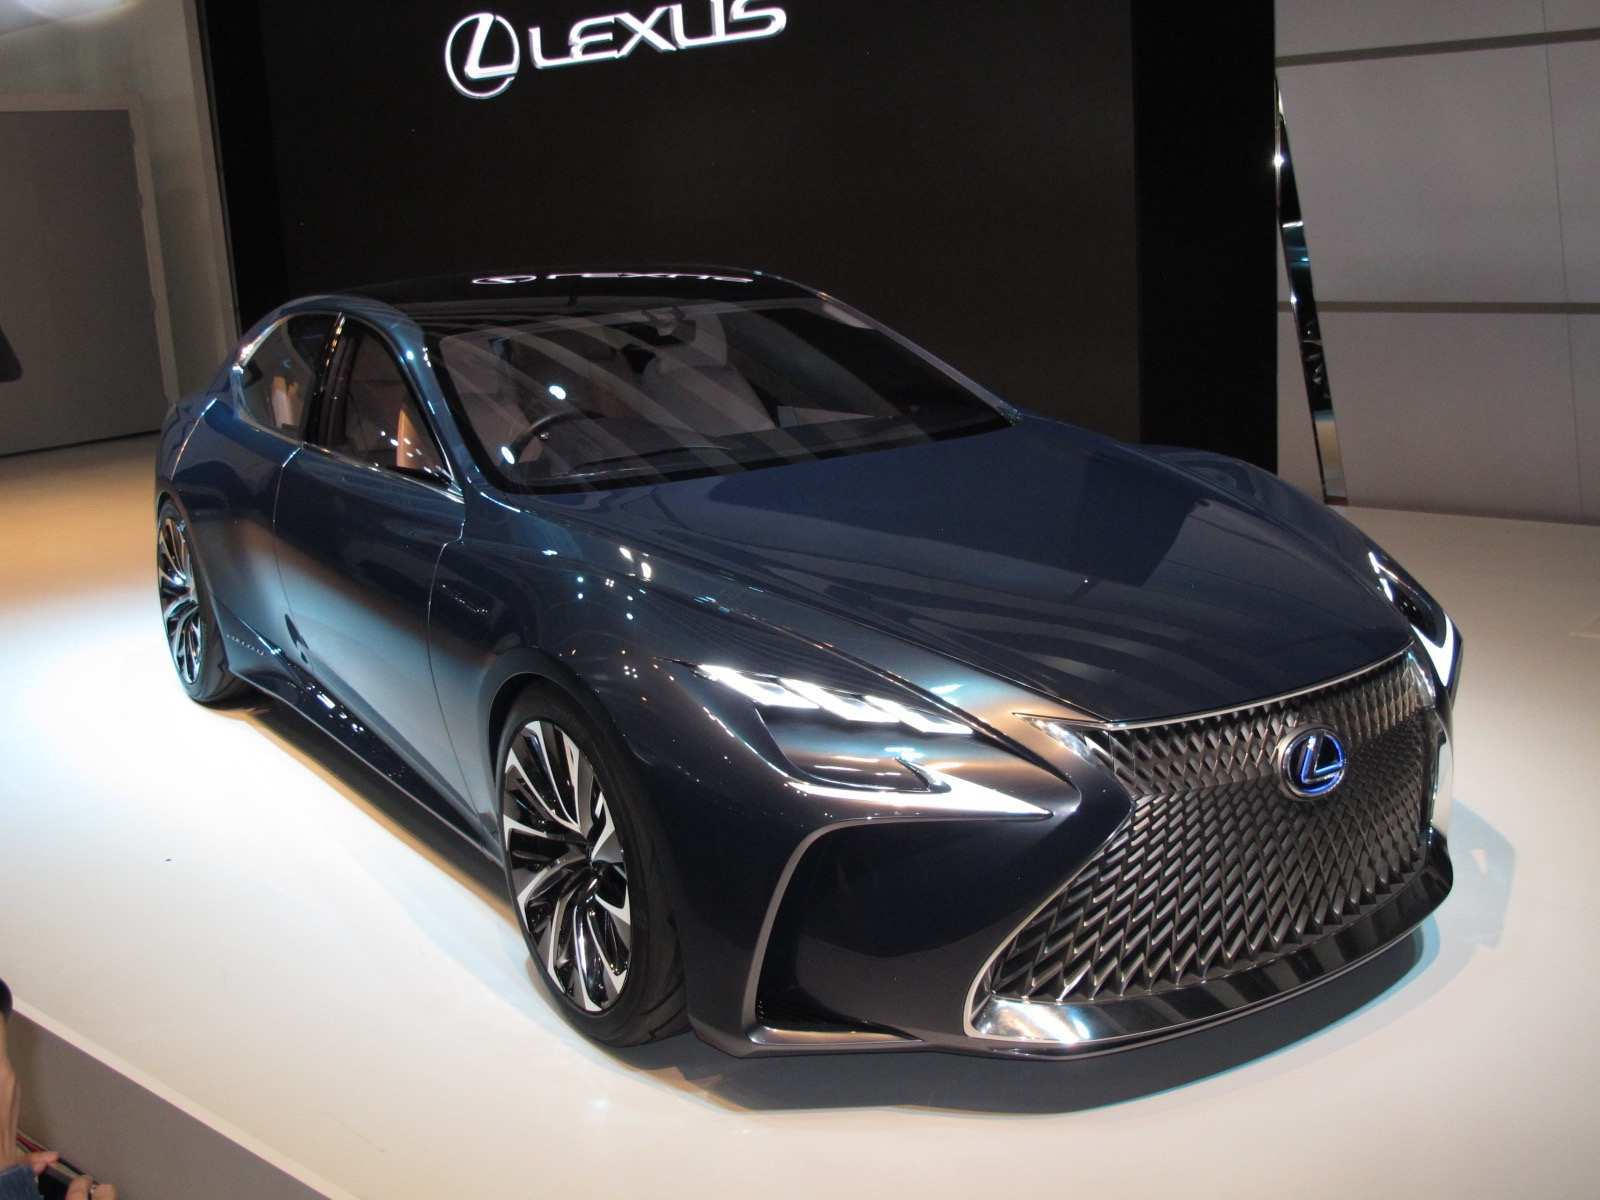 13 All New Lexus Vehicles 2020 Specs and Review by Lexus Vehicles 2020